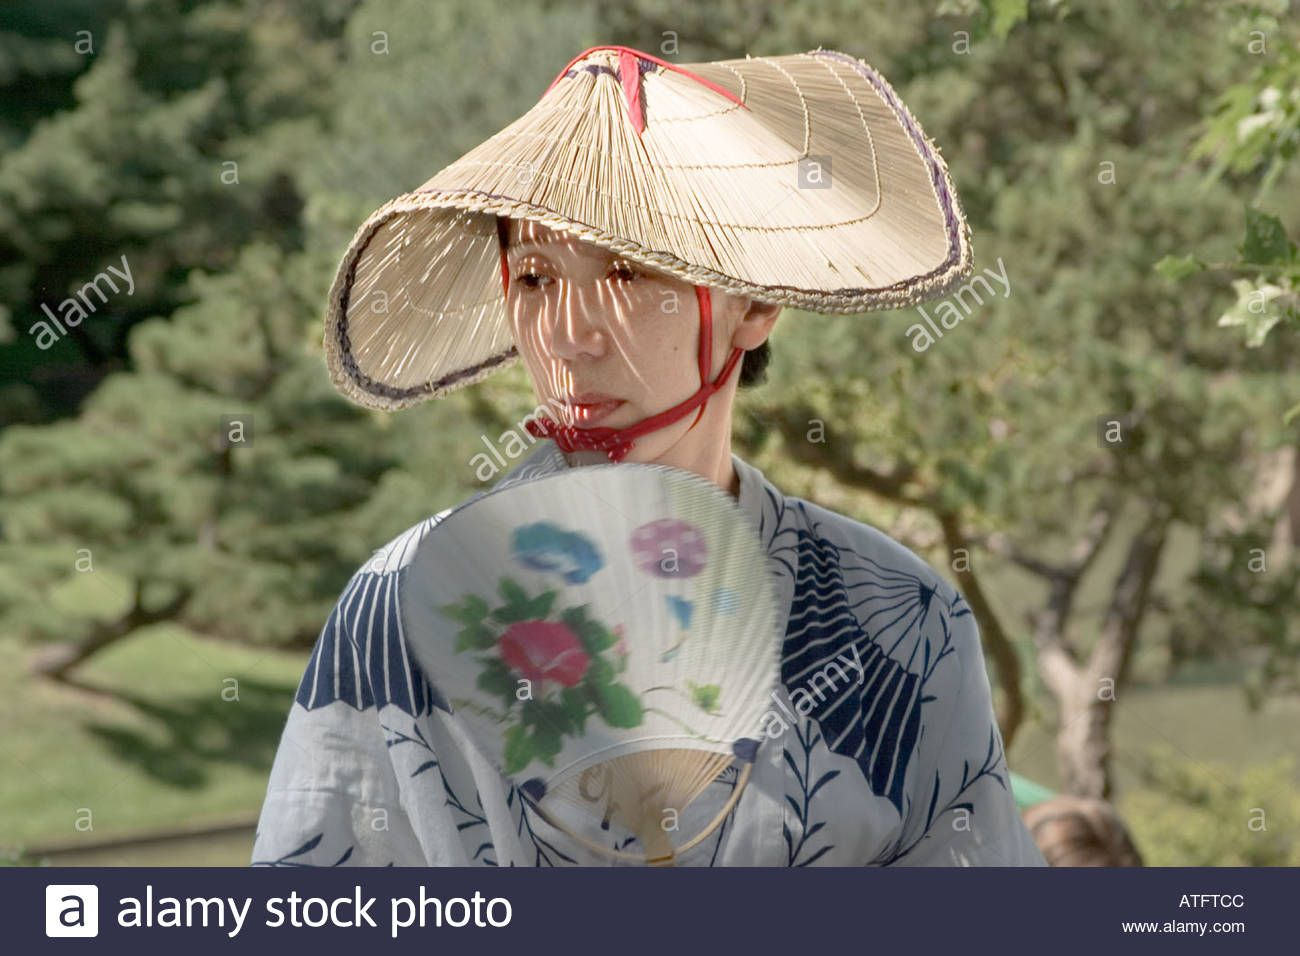 Download This Stock Image A Japanese Woman In Traditional Dress With Straw Hat And Fan At The Annual Japanese Festi Japanese Festival Japanese Women Straw Hat